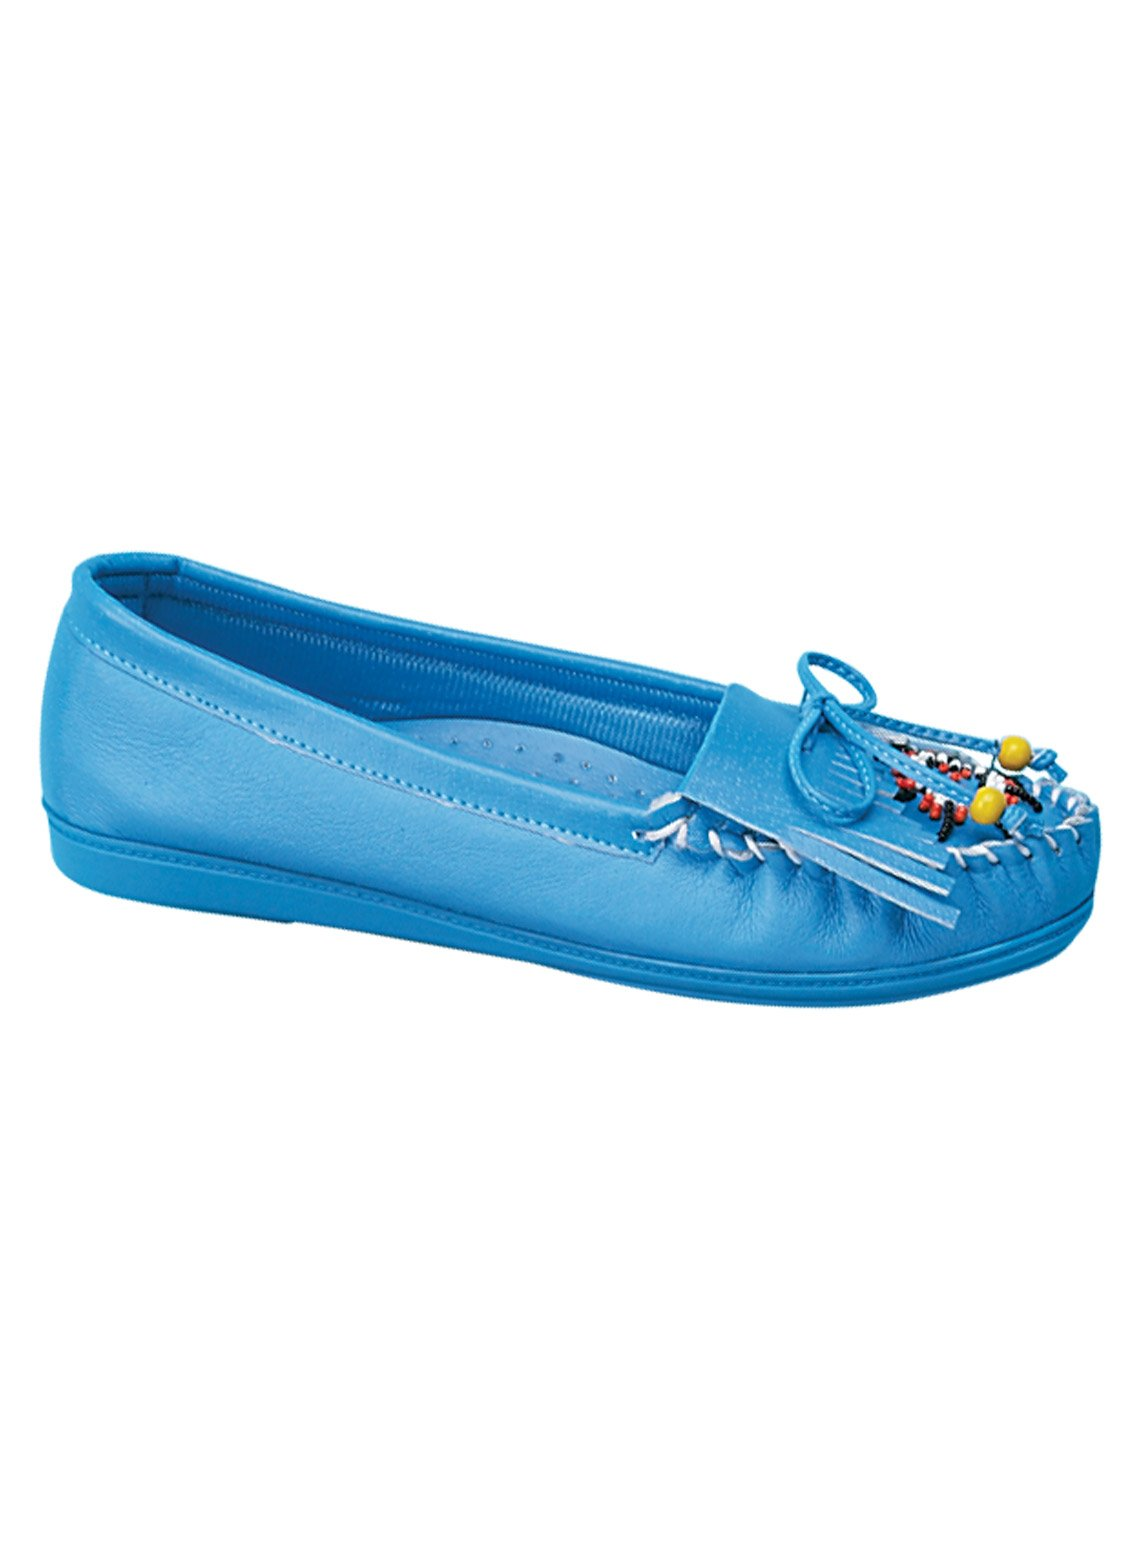 Genuine Leather Beaded Moccasins, Blue, Size 8 (Extra Wide)